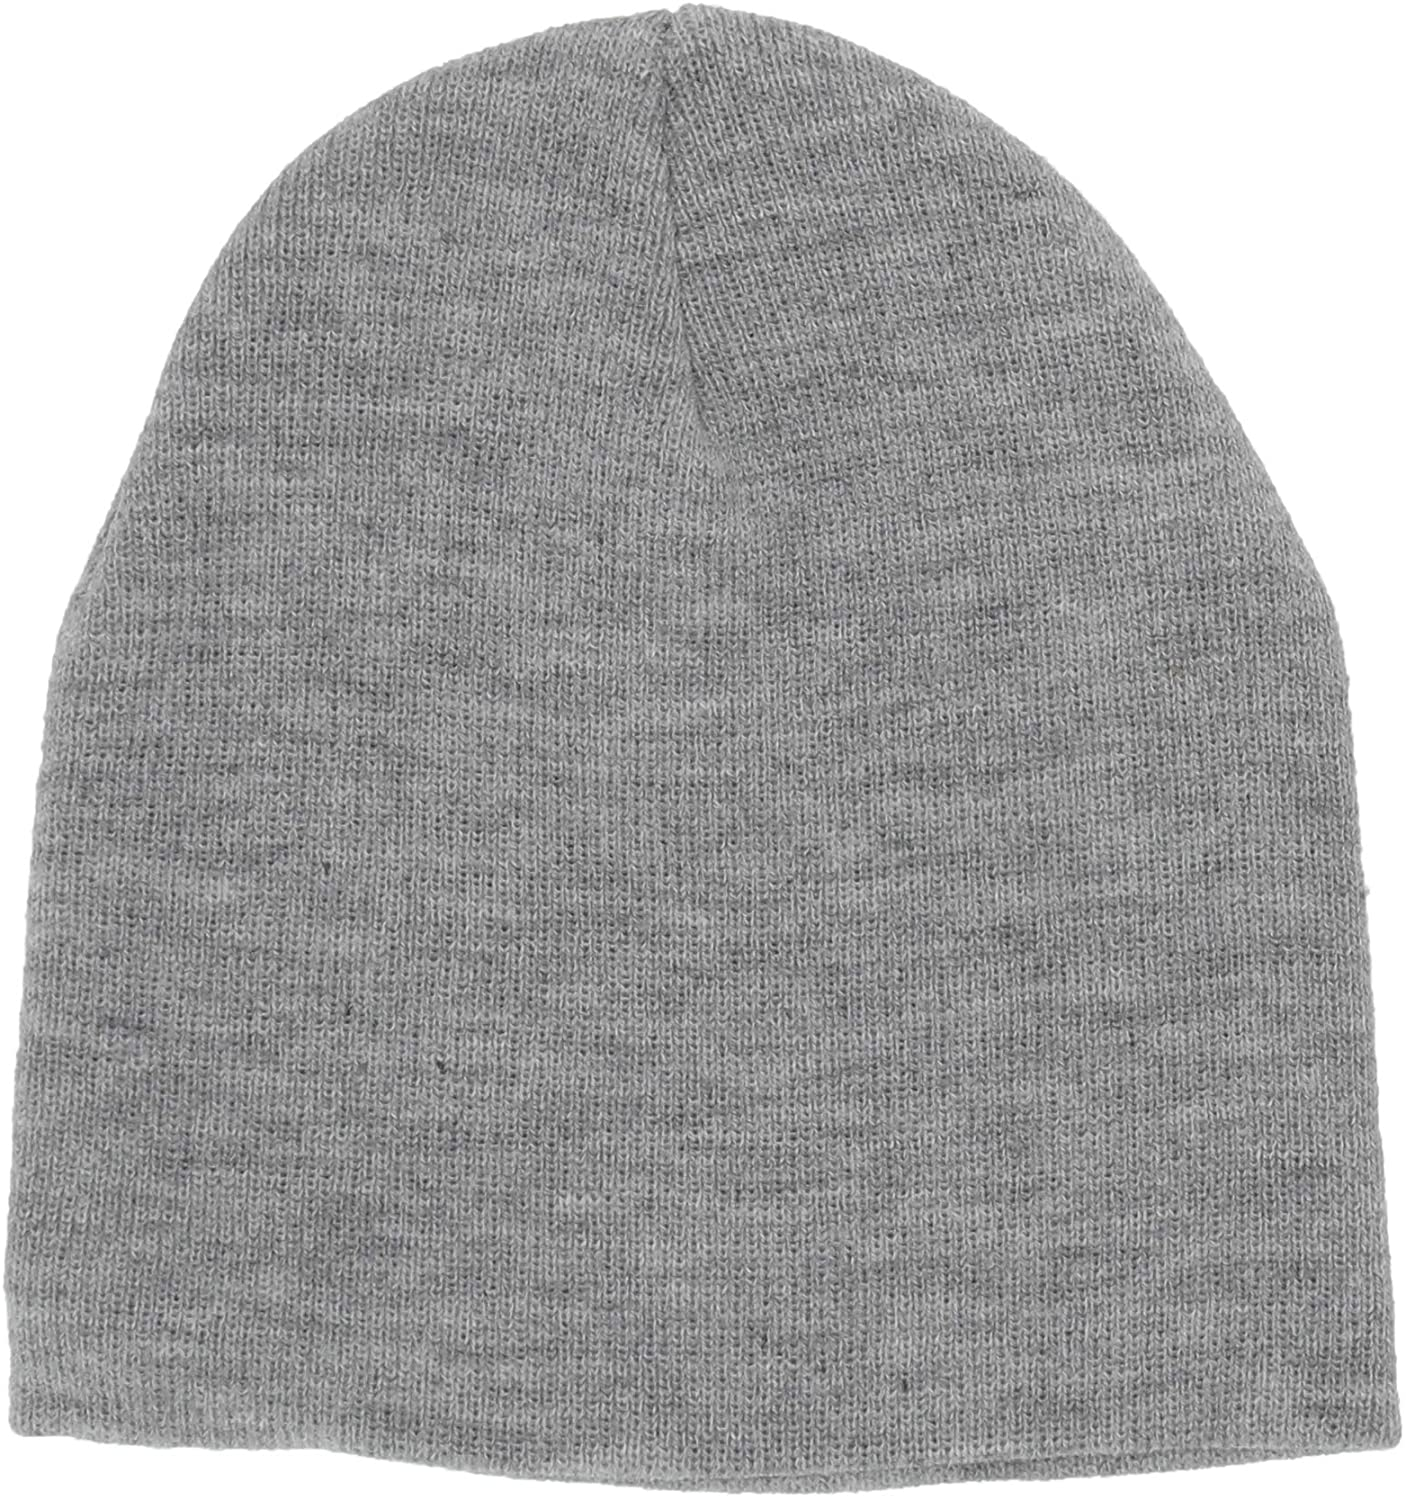 Marky G Apparel Max 74% OFF Beanie Knit Save money